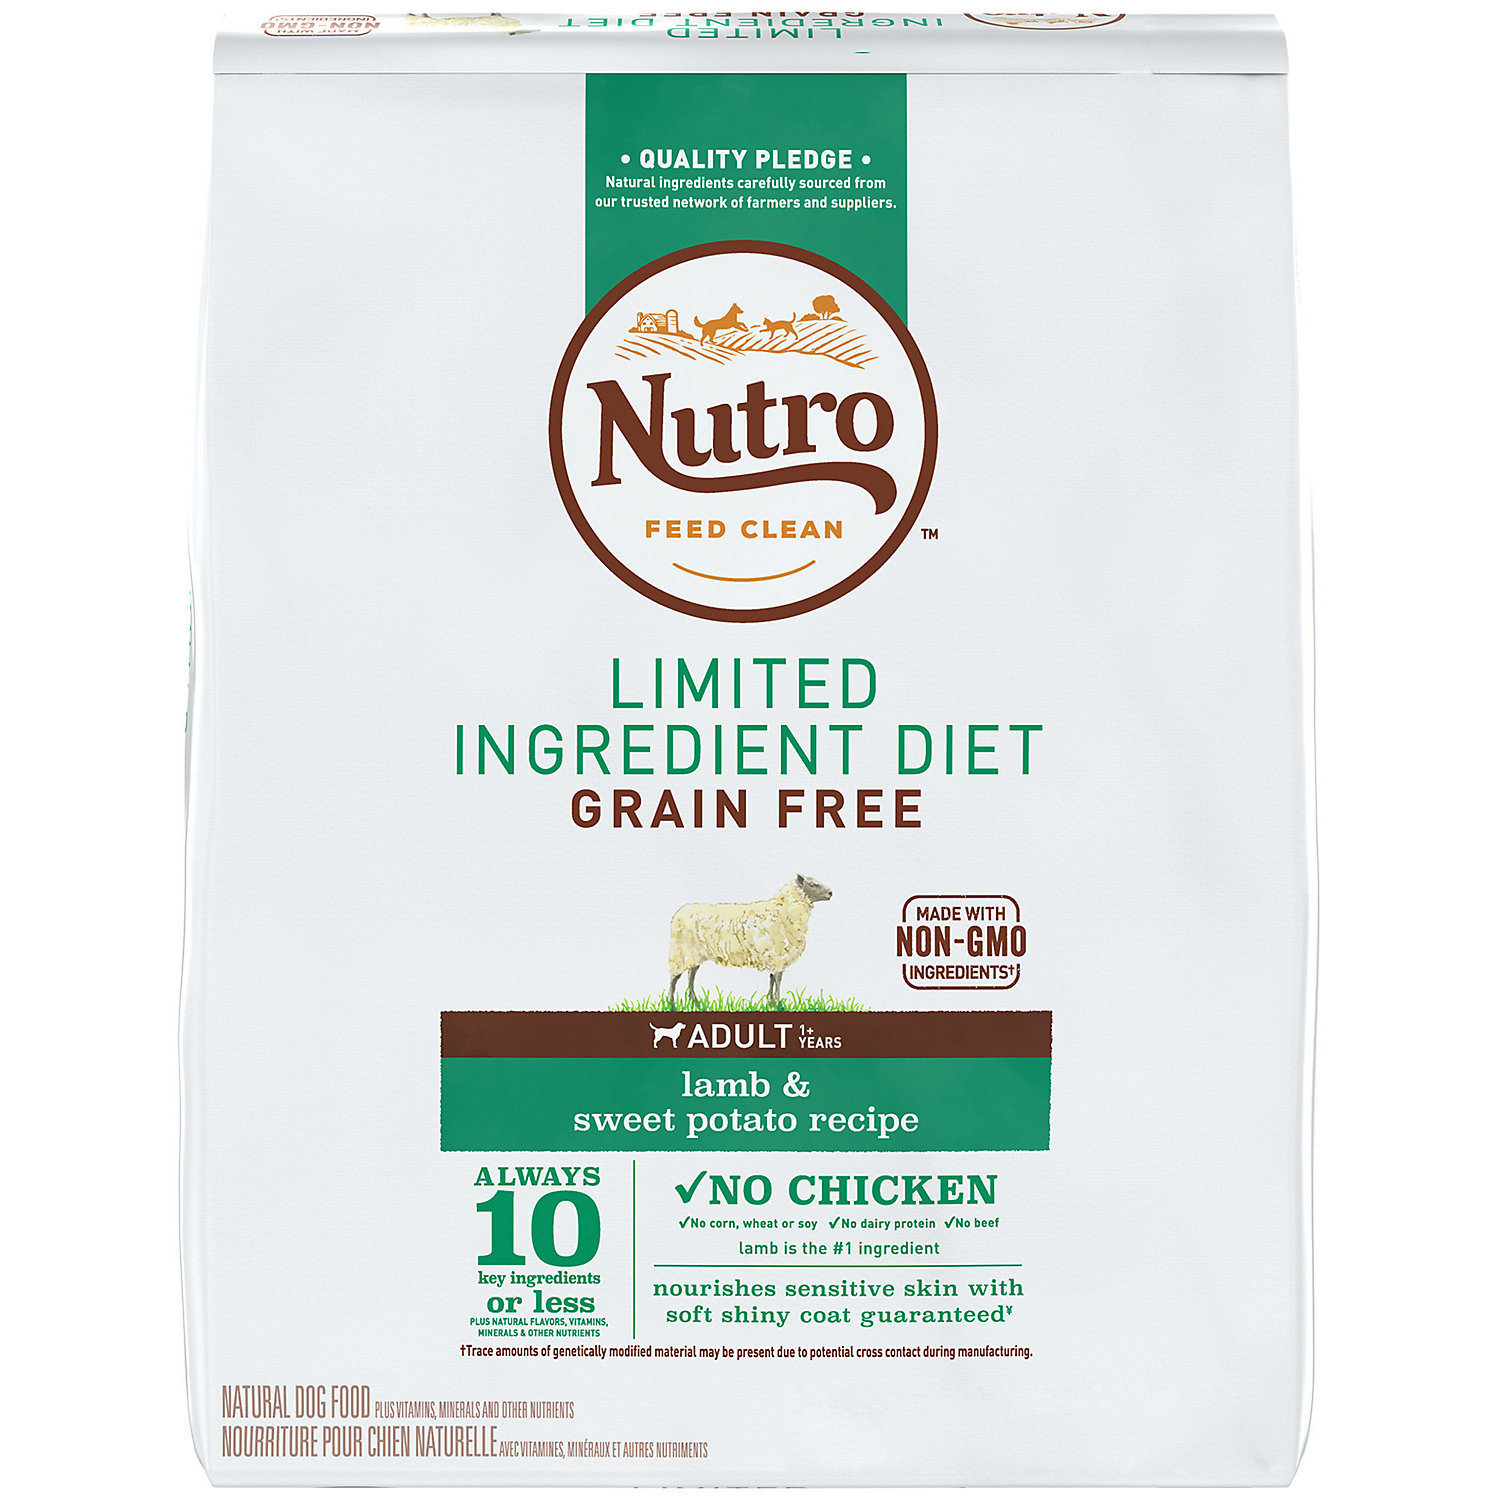 Nutro Limited Ingredient Diet Adult Lamb & Sweet Potato Dog Food Recipe, 4 Lbs. (1/19) (A.I1)